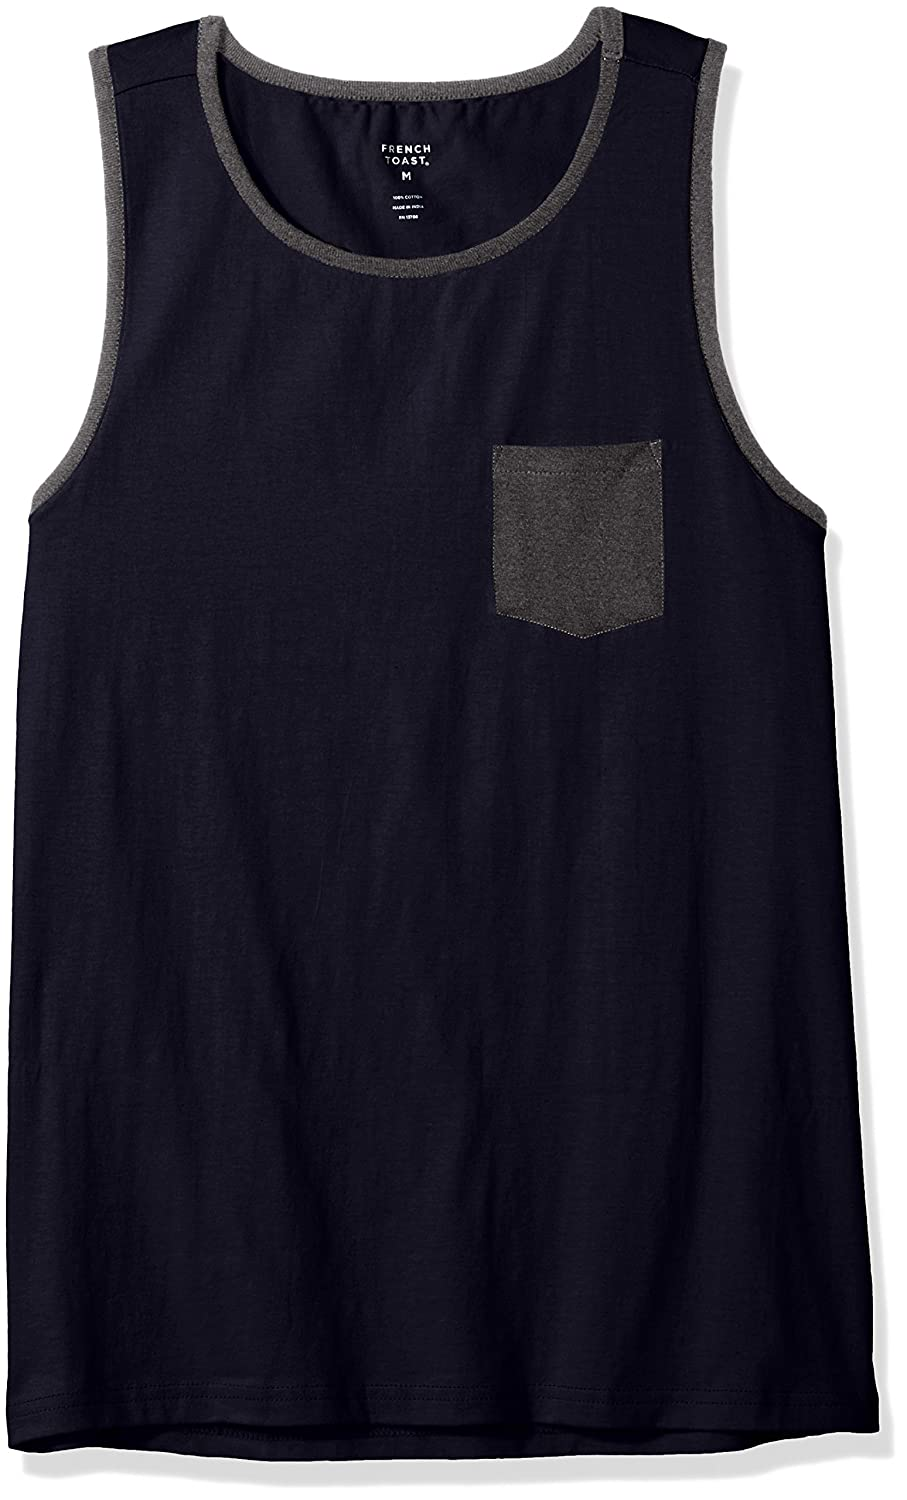 French Toast Boys Tank with Pocket Navy 6 LA3577